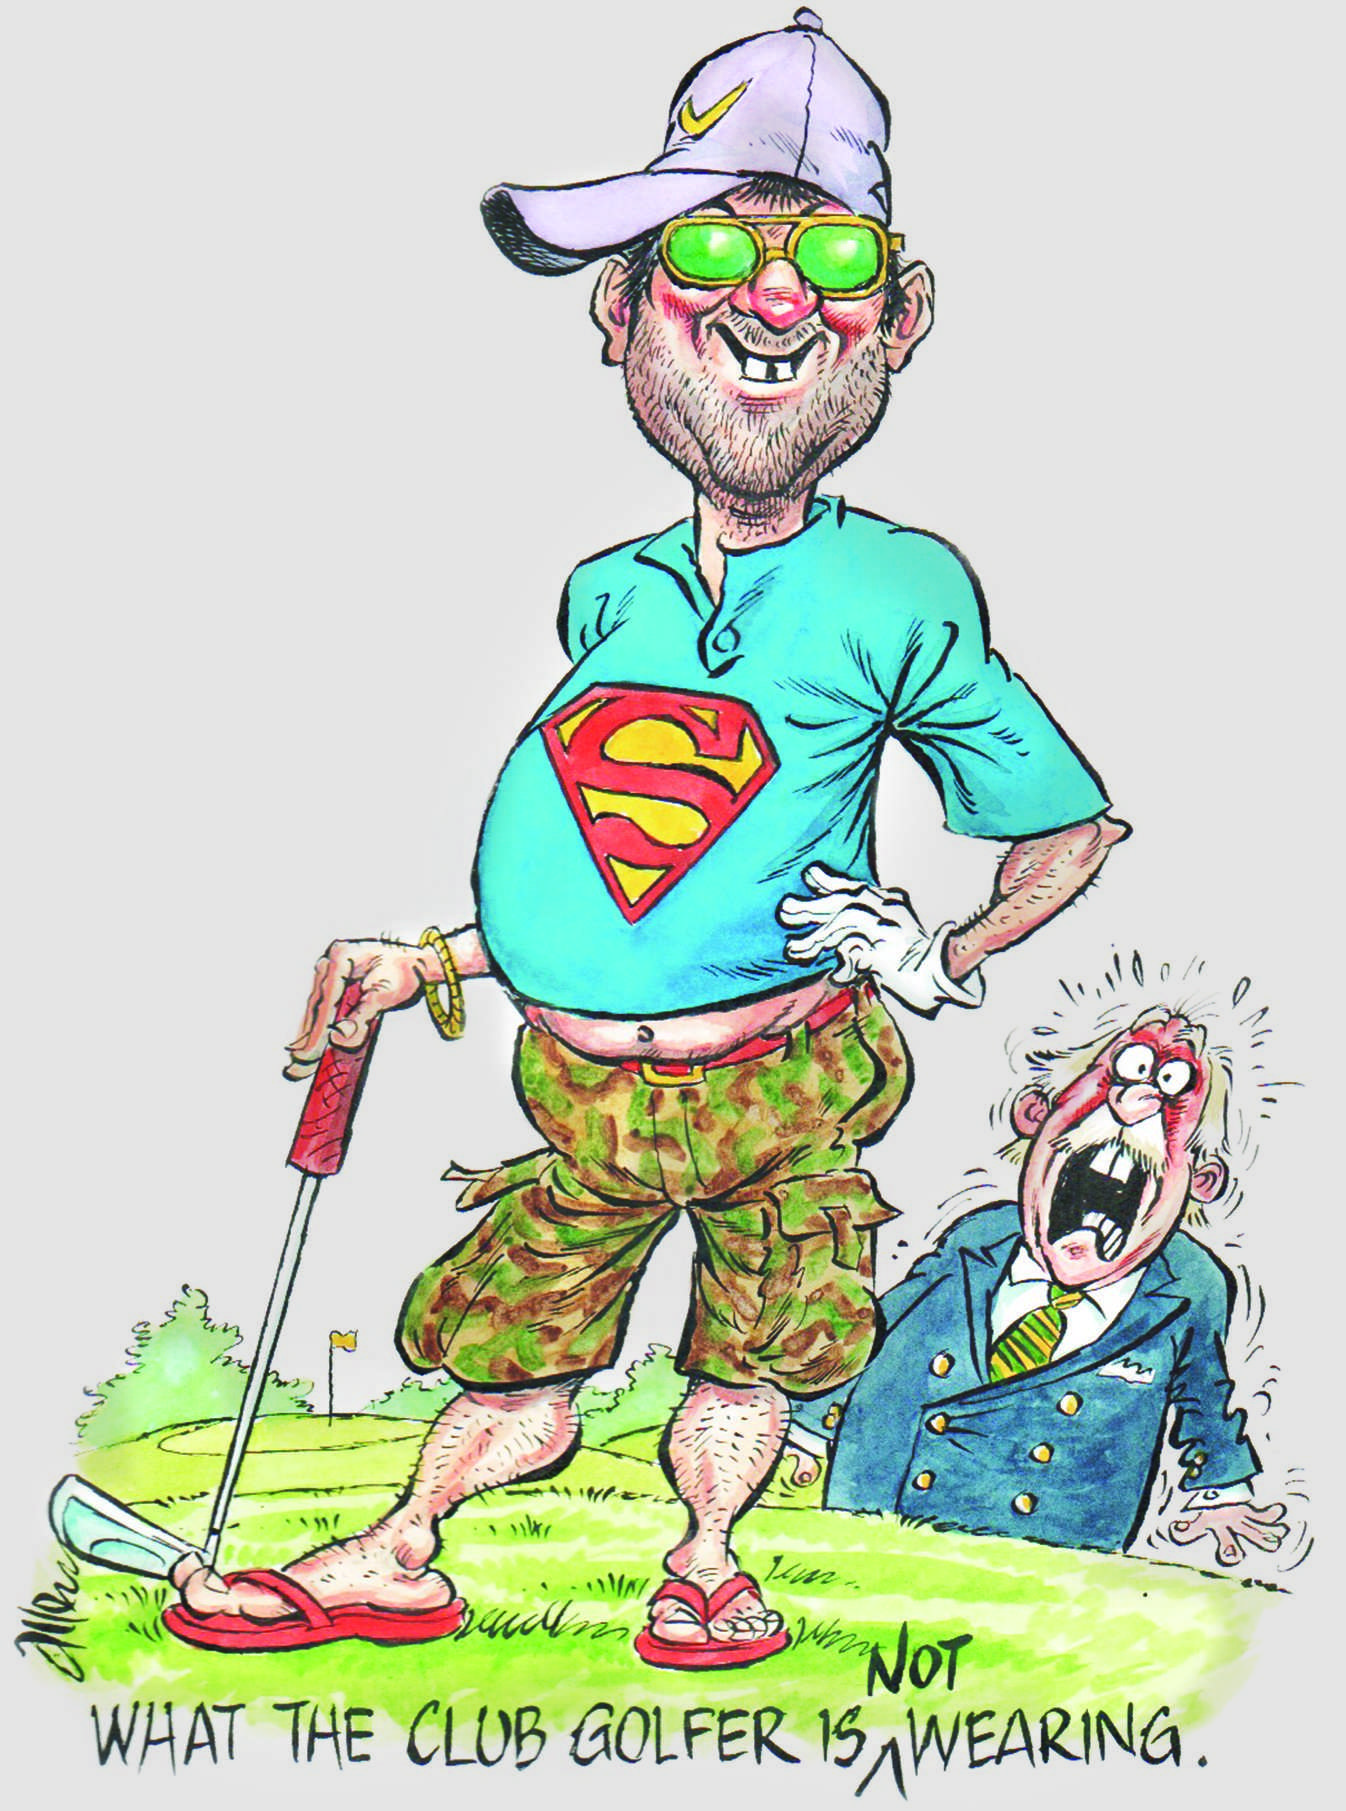 """""""In my book, anyone over the age of 70 wearing shorts on a golf course should be subject to a two stroke penalty."""""""